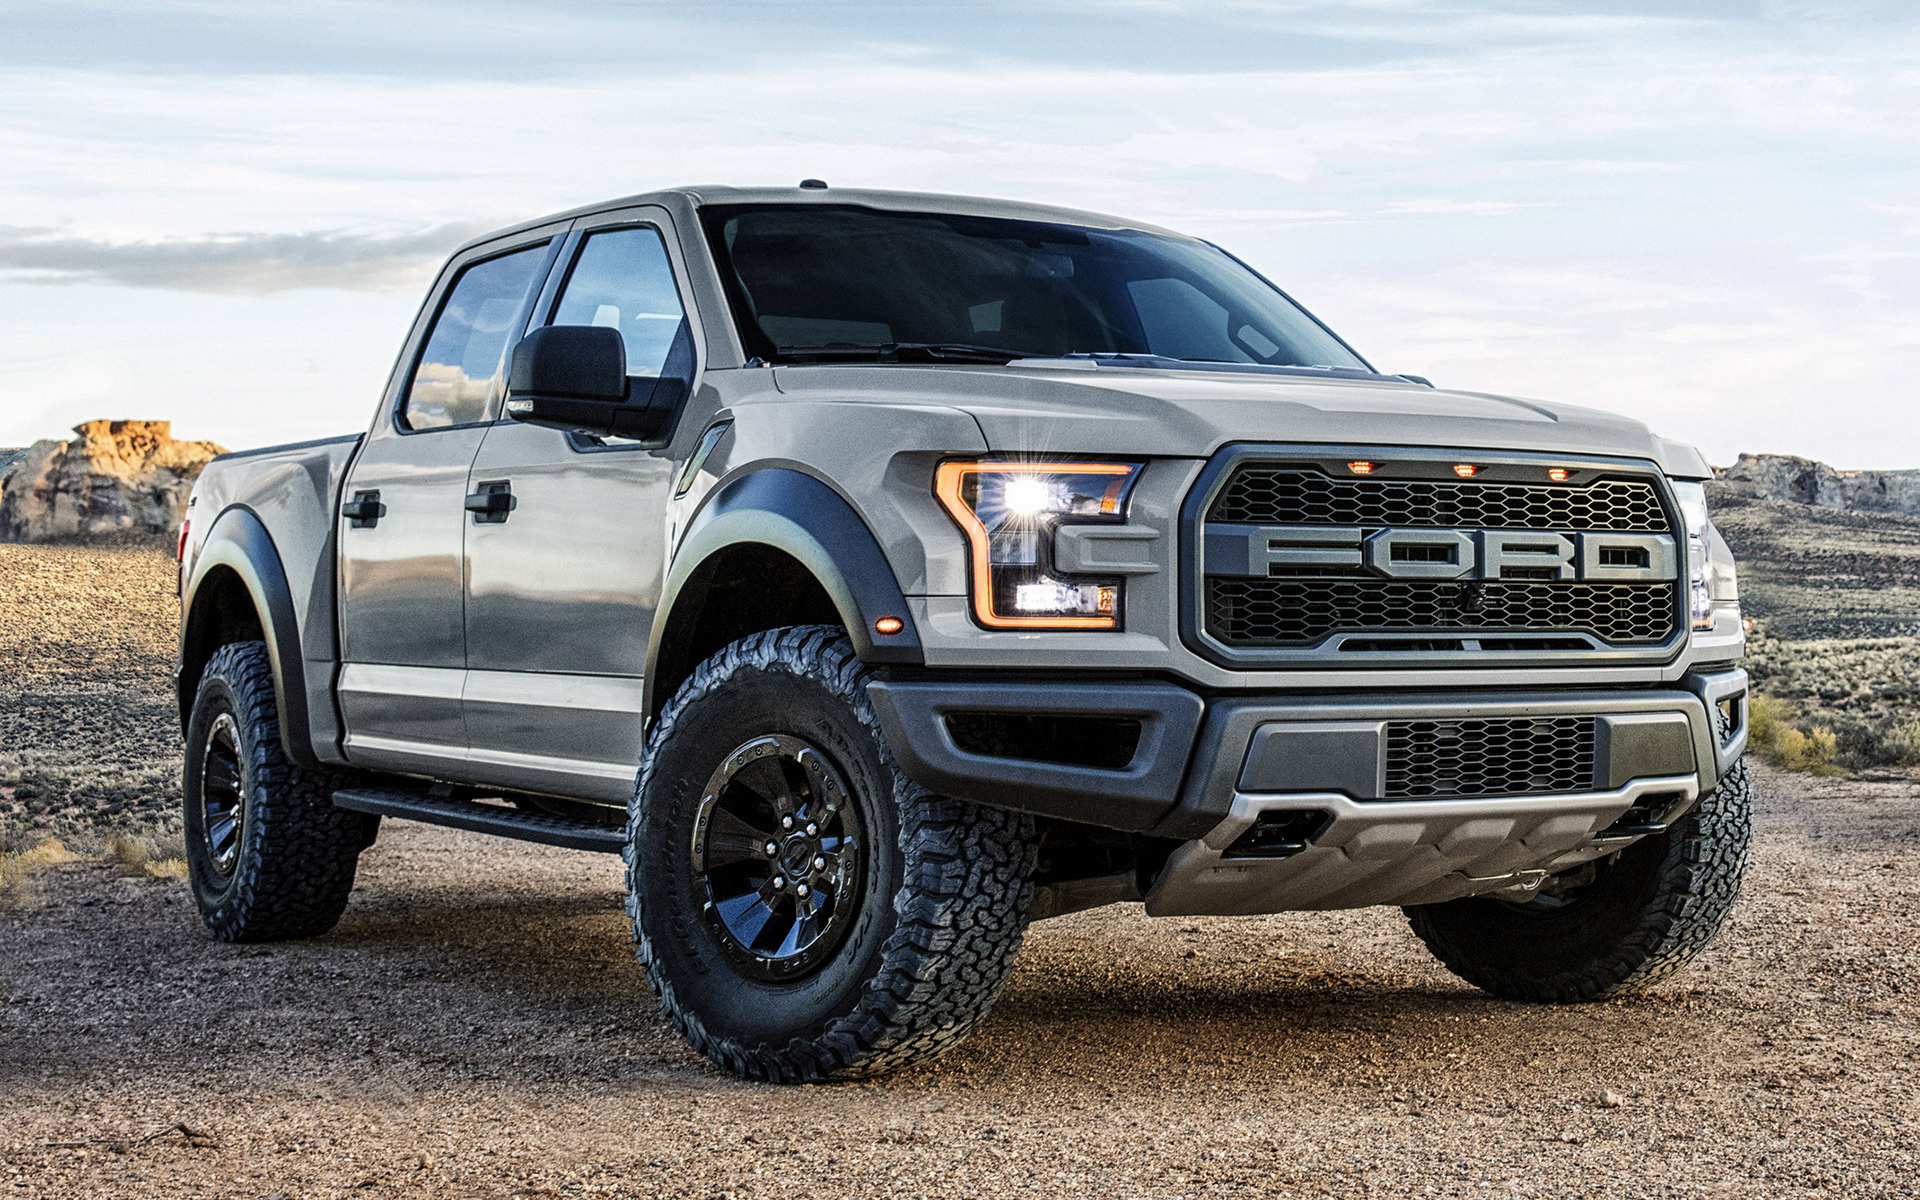 Ford F-150 Raptor SuperCrew (2017) Wallpapers and HD Images - Car ...